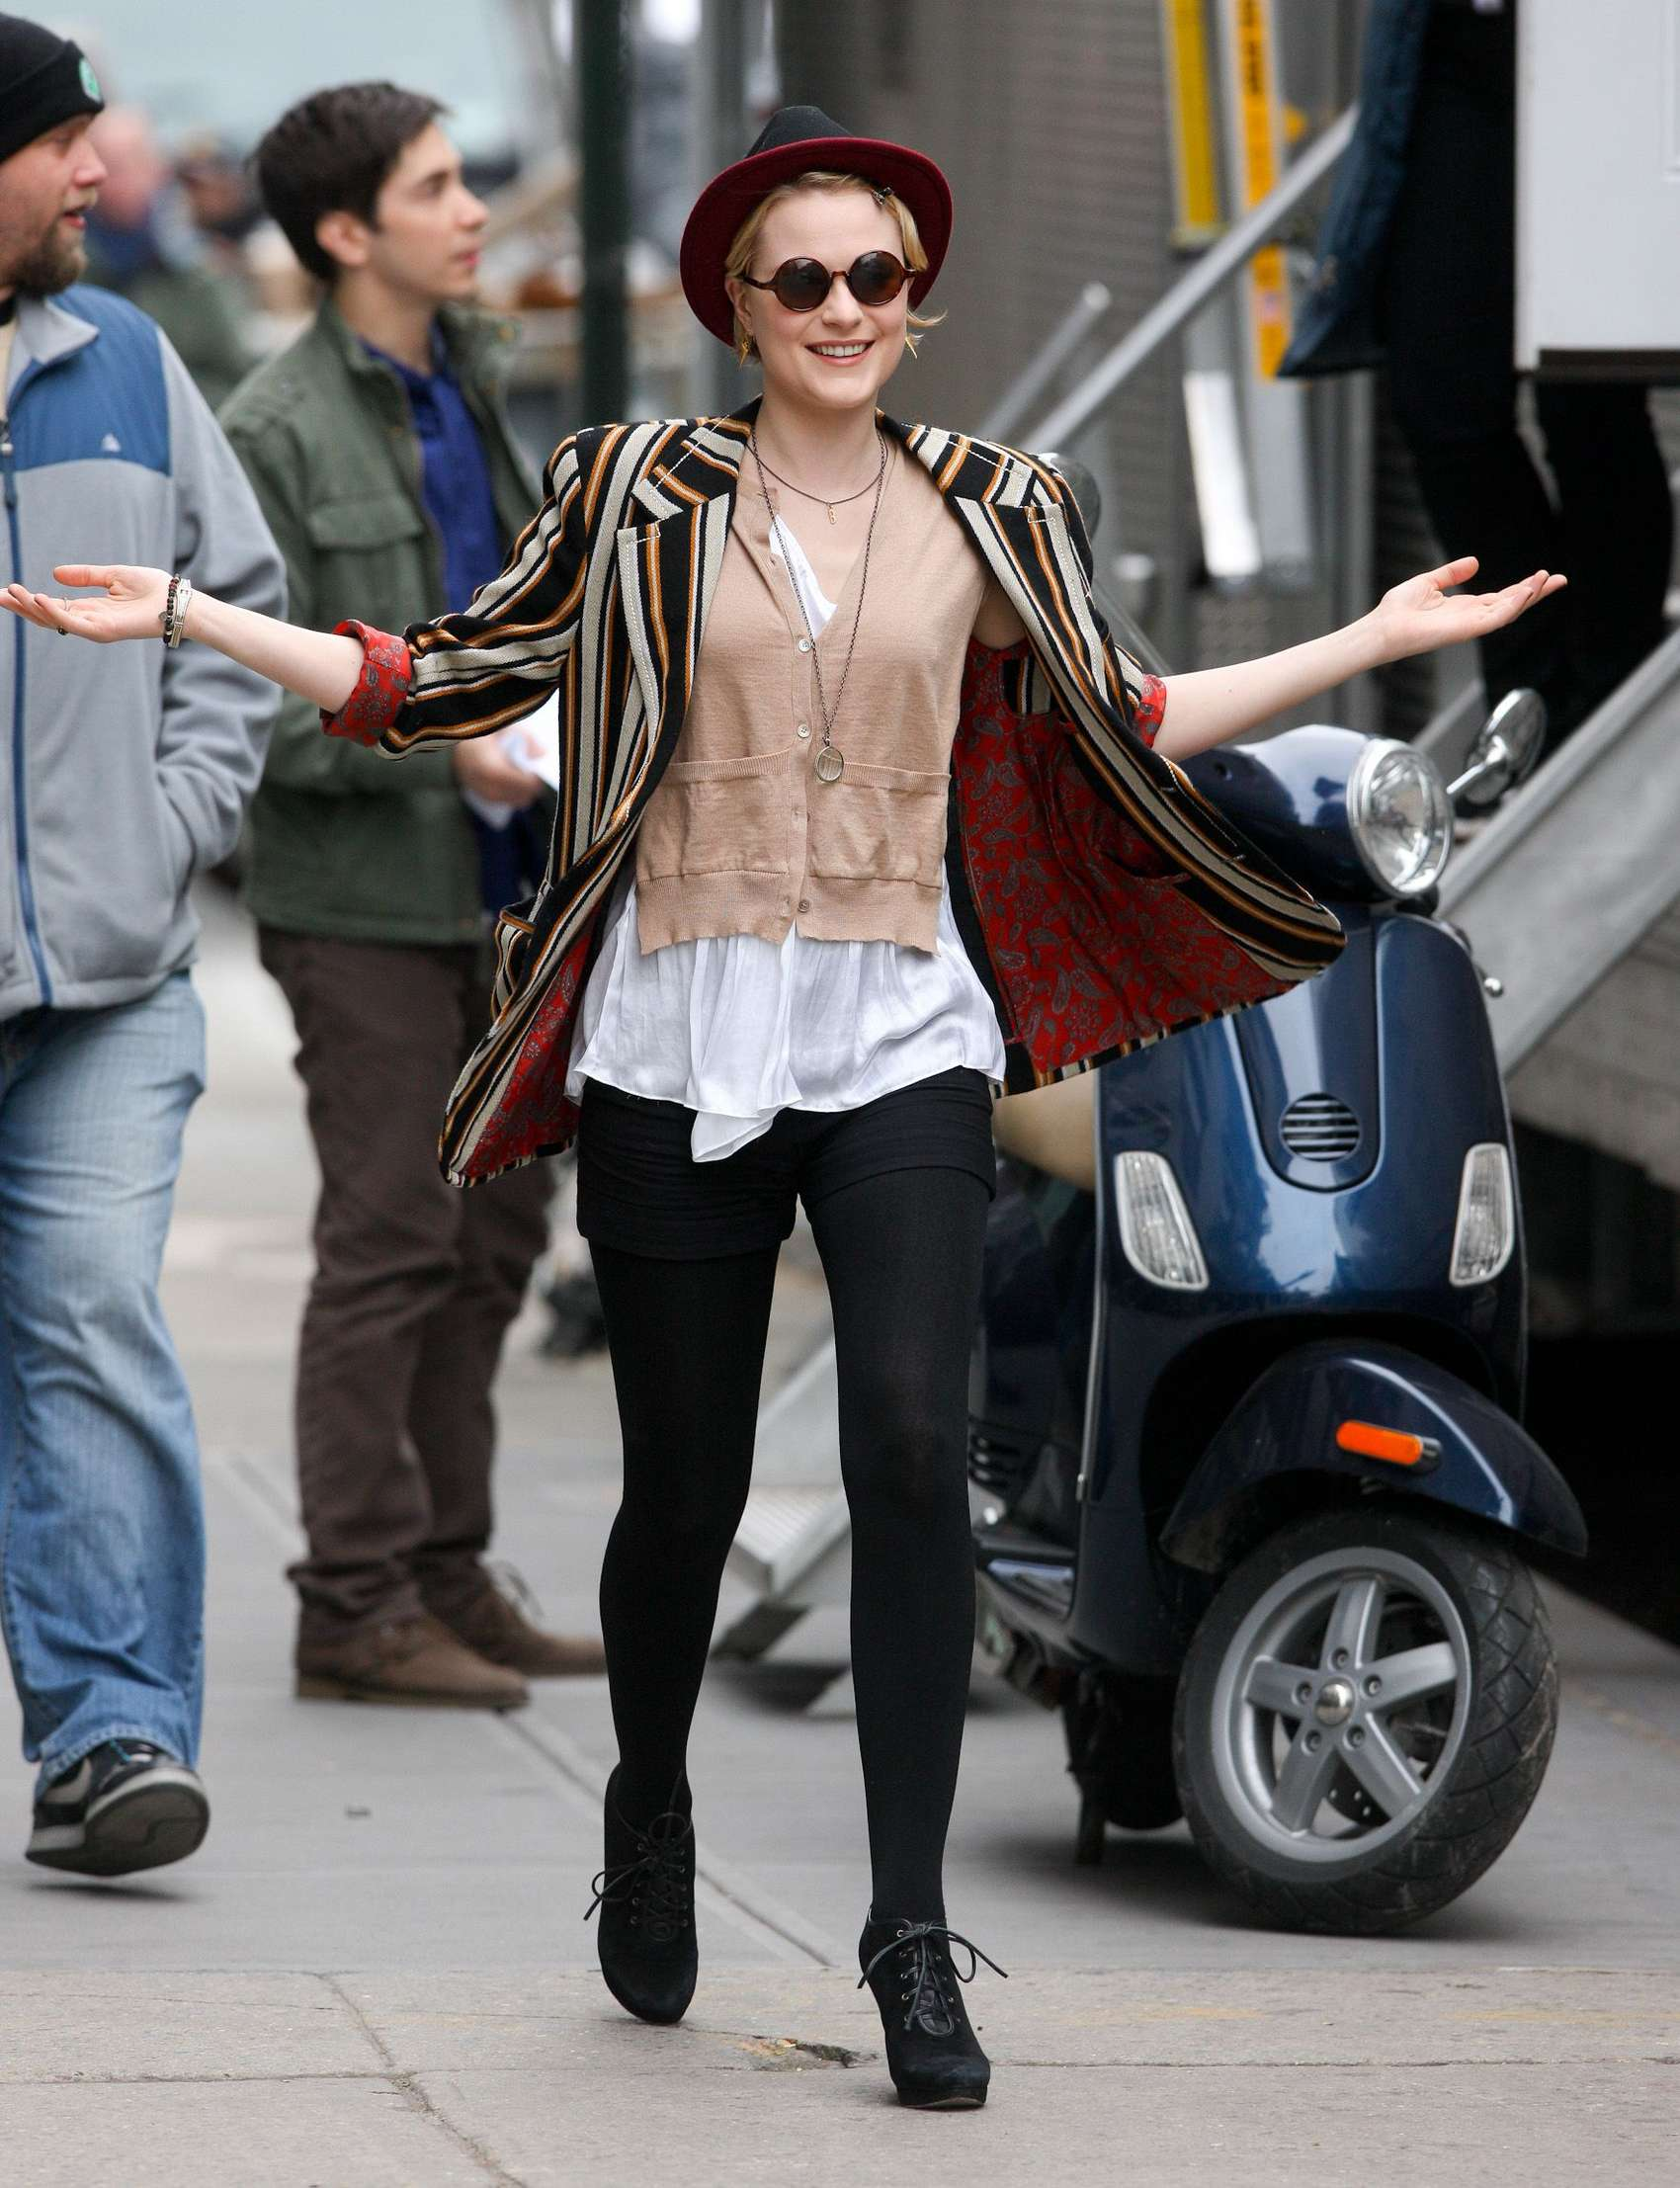 Evan Rachel Wood on set of A Case of you in New York